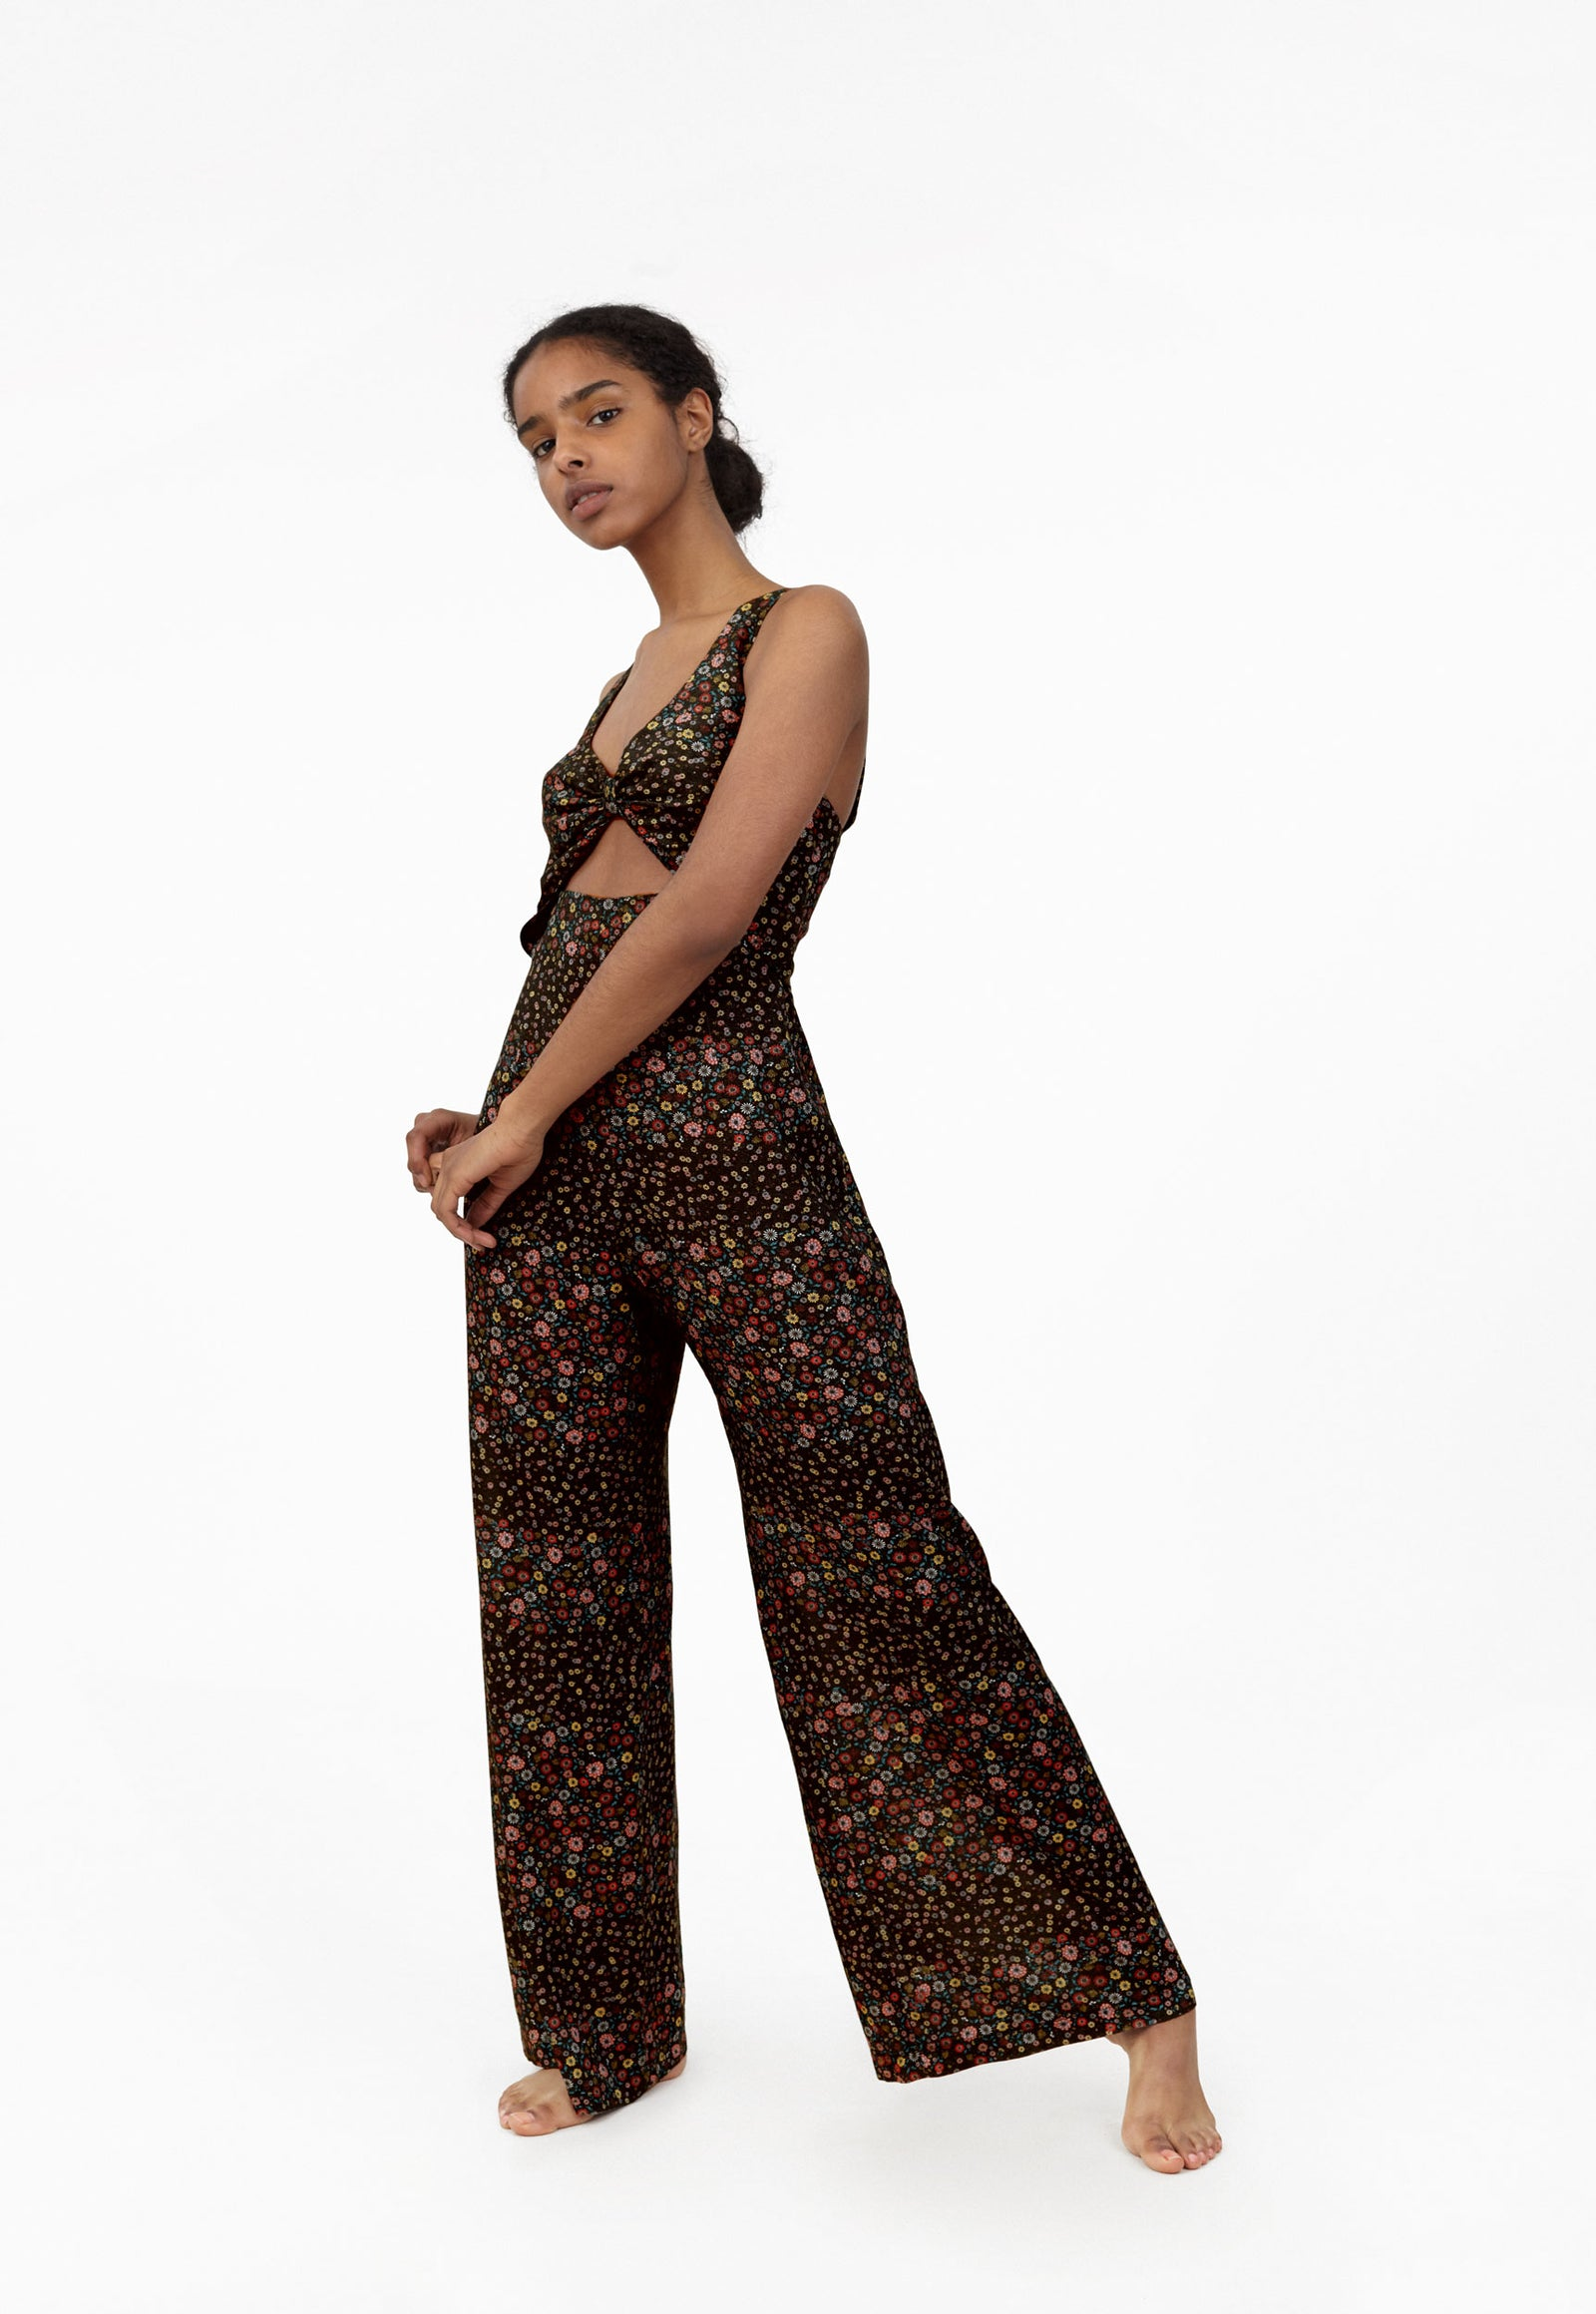 6 Shore Road Silver Screen Jumpsuit Black Floral Jumpsuit in 0,2,4,6,8,10,12 - Summer 2018 Collection